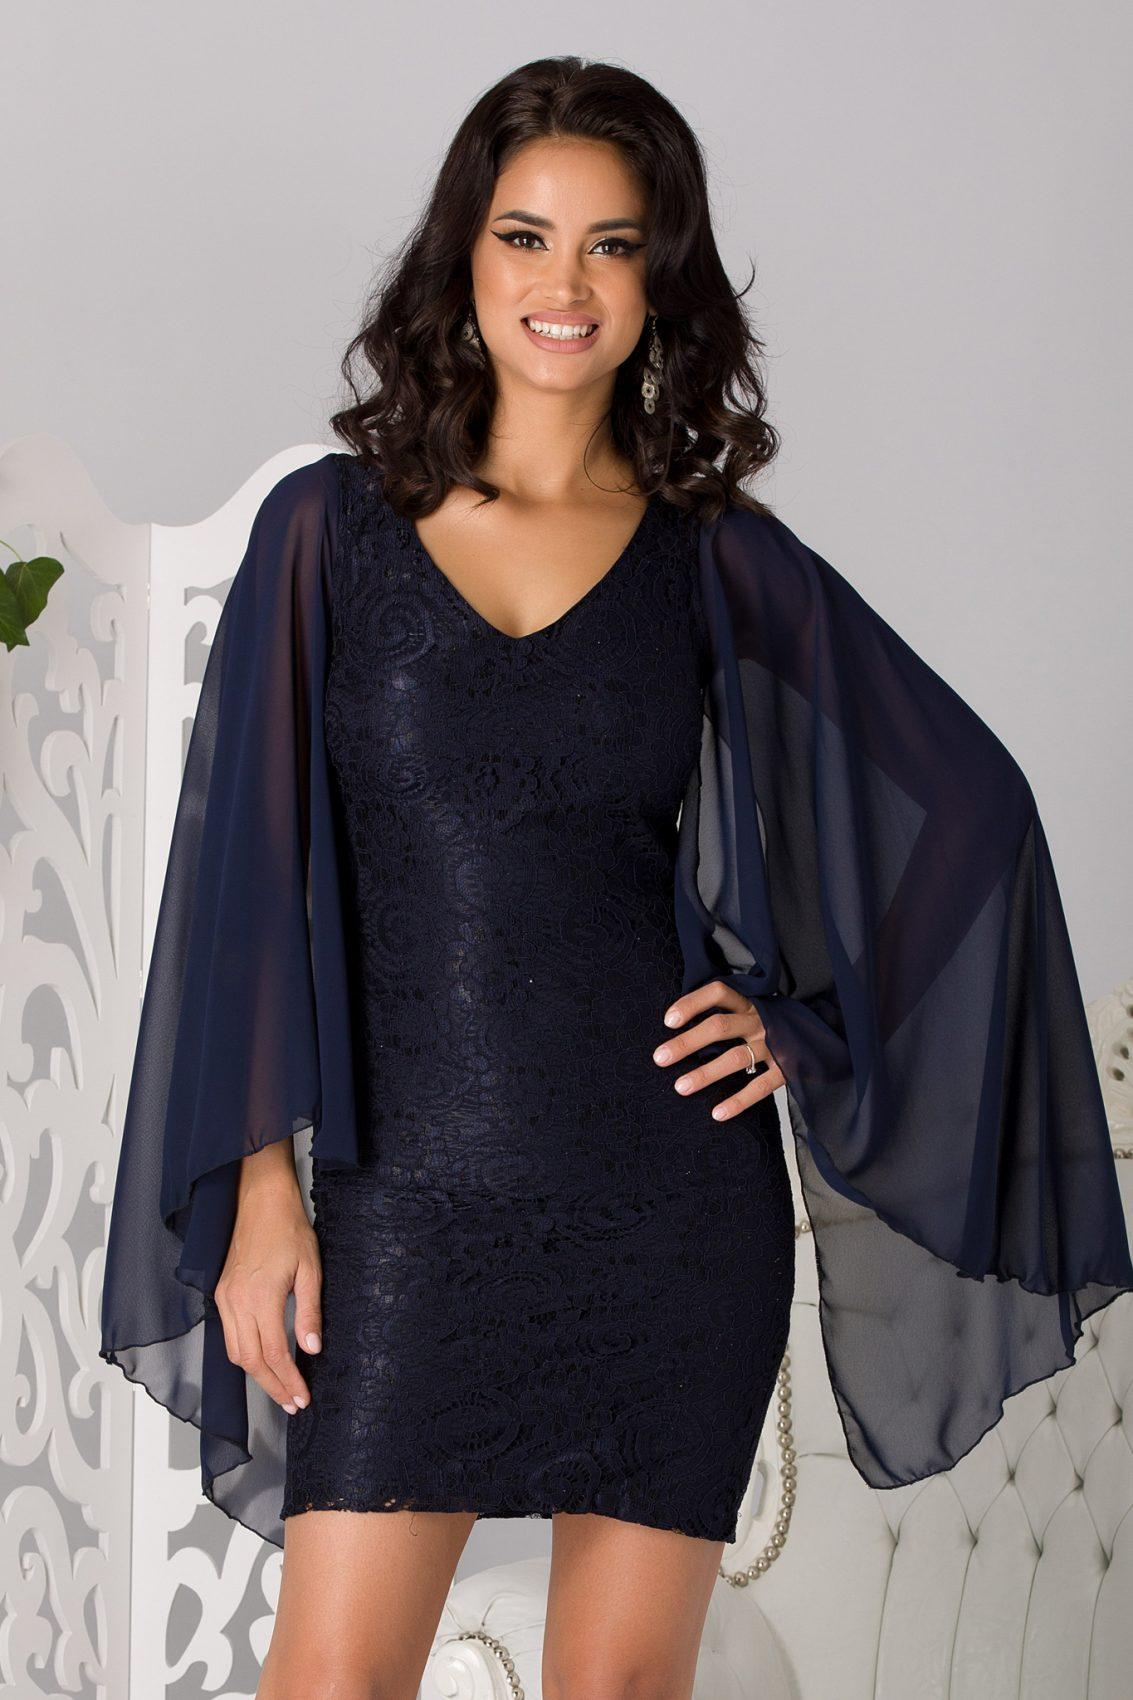 Michelle Navy Blue Dress